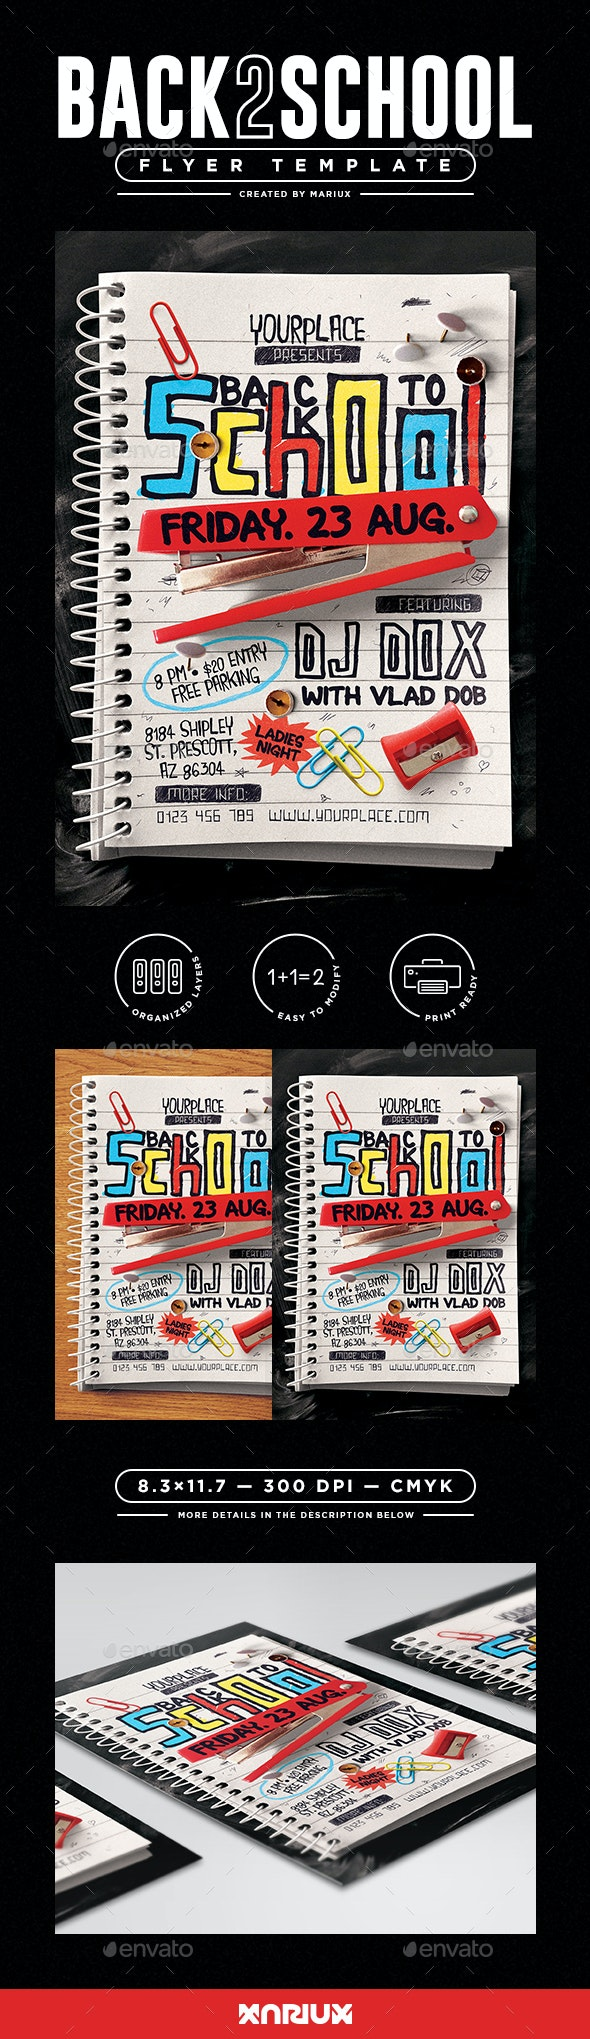 Back to School Flyer - Events Flyers